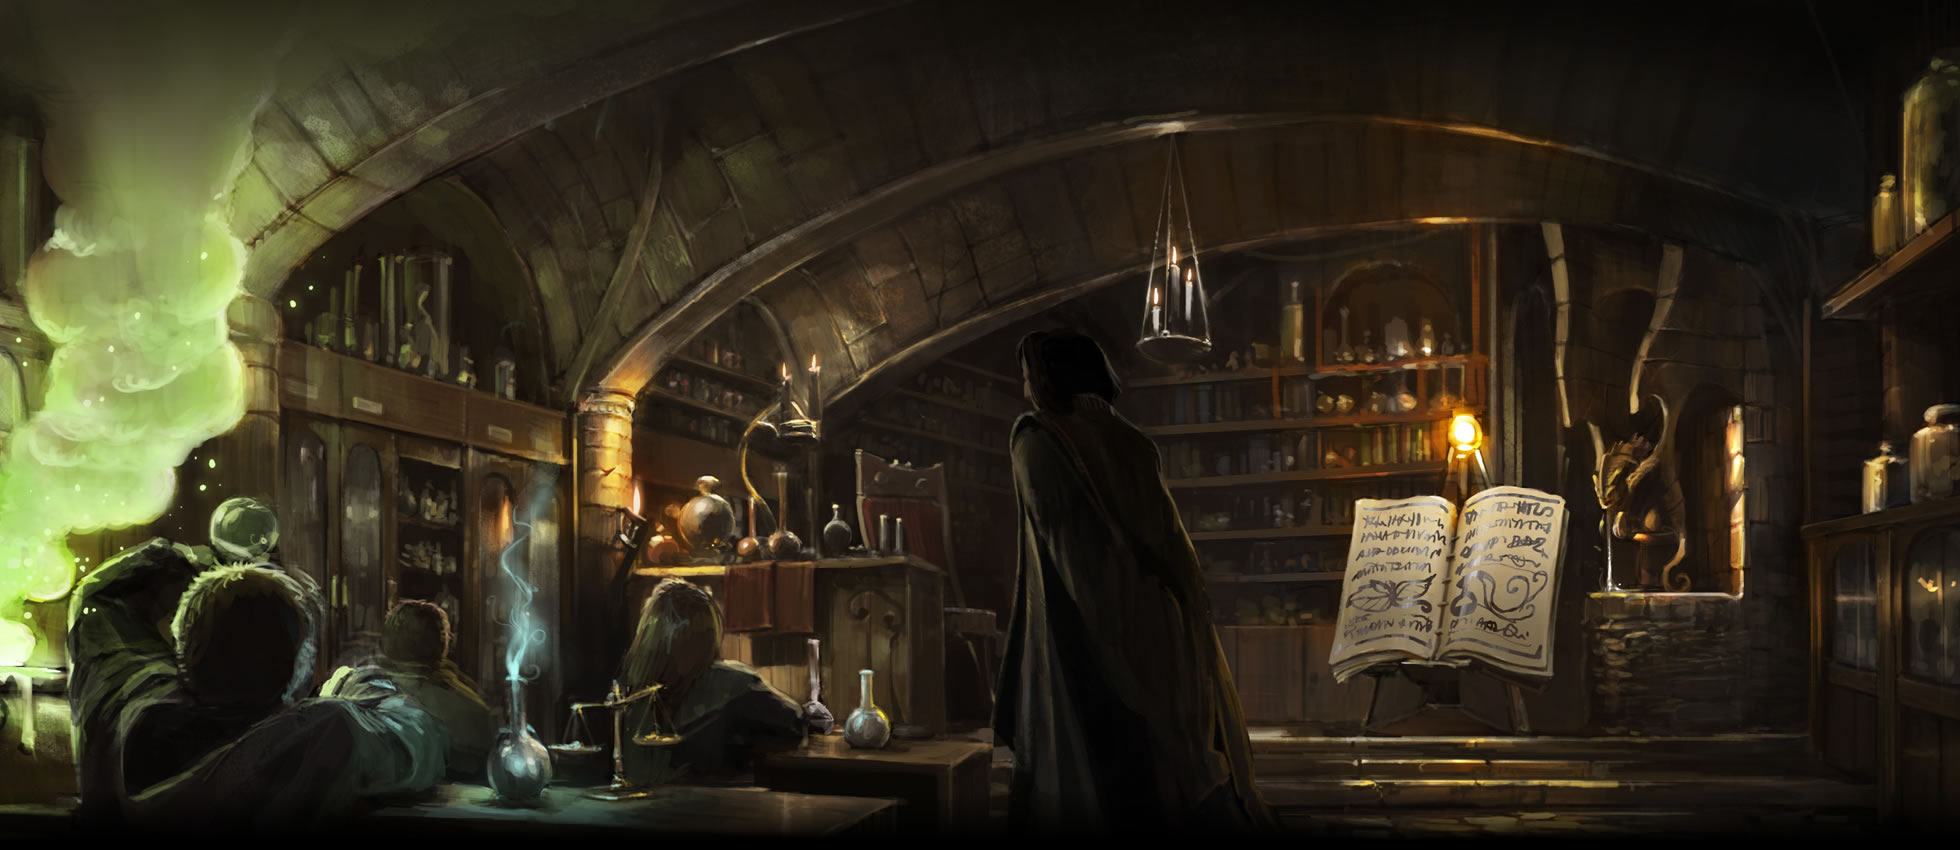 Harry 39 s first potions lesson pottermore wiki fandom - A tavola con harry potter ...